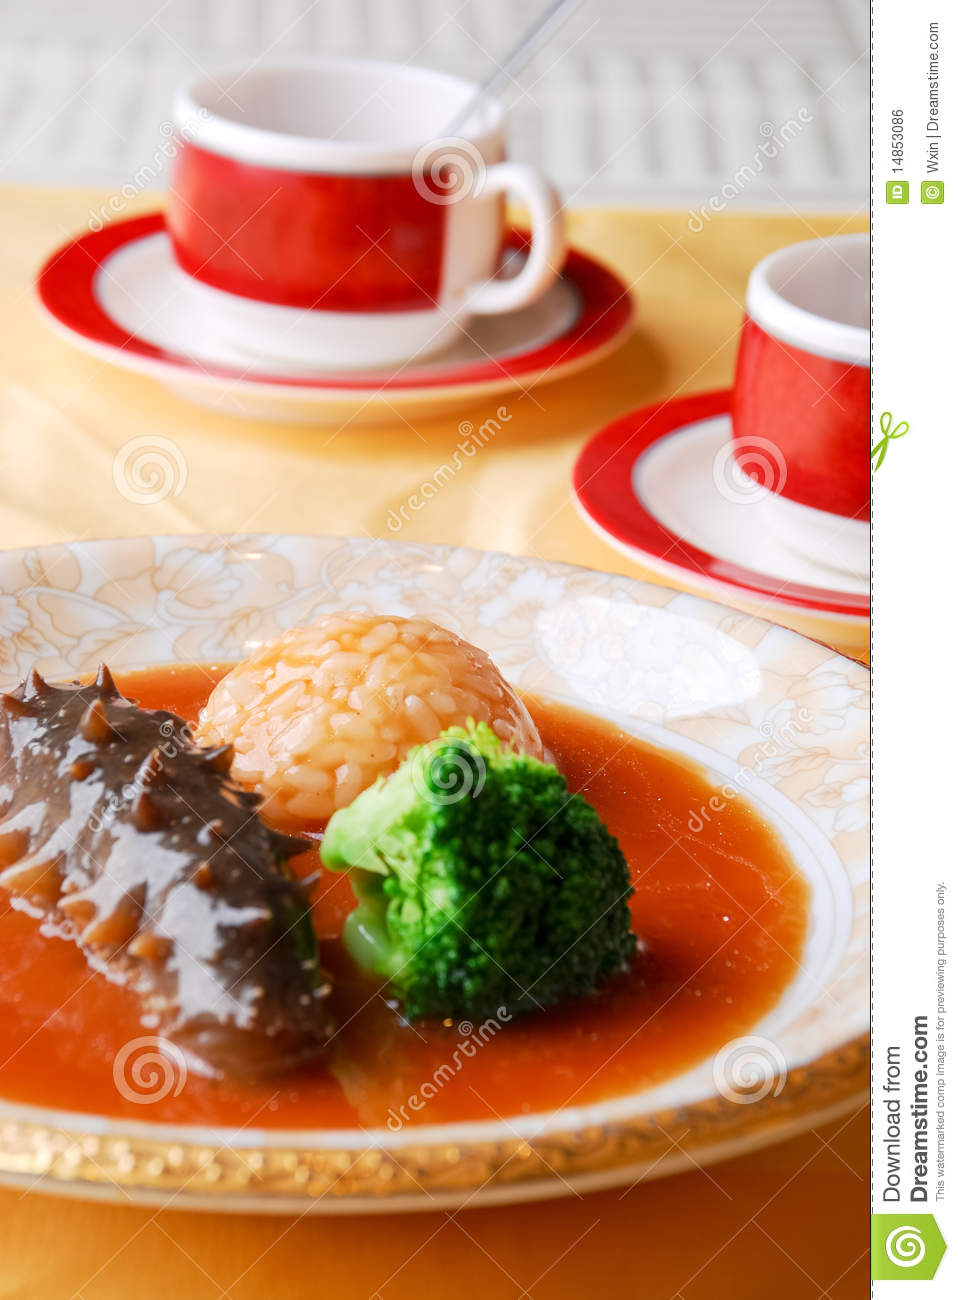 Chinese food - sea cucumber and rice